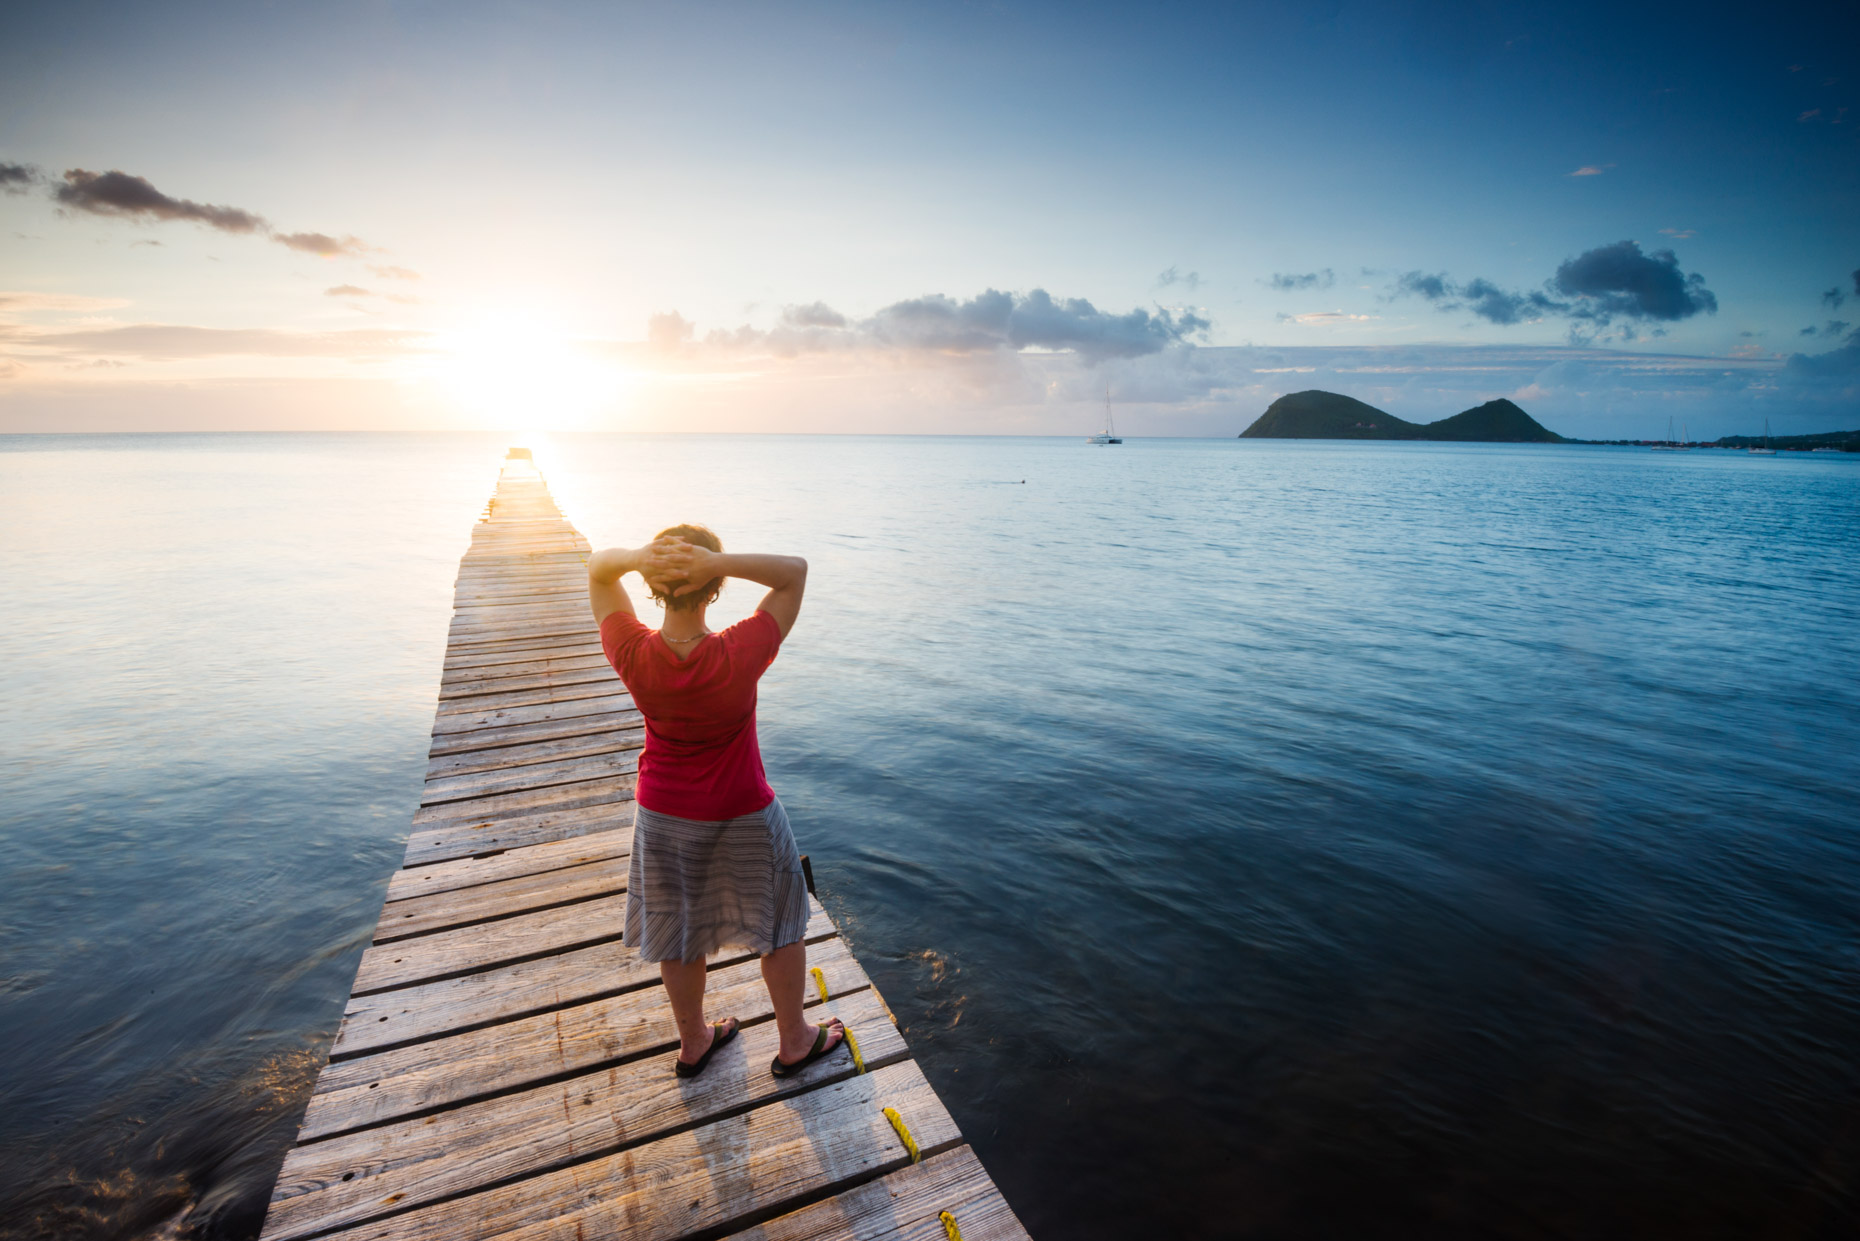 Lifestyle - Woman Watching Sunset in Portsmouth, Dominica